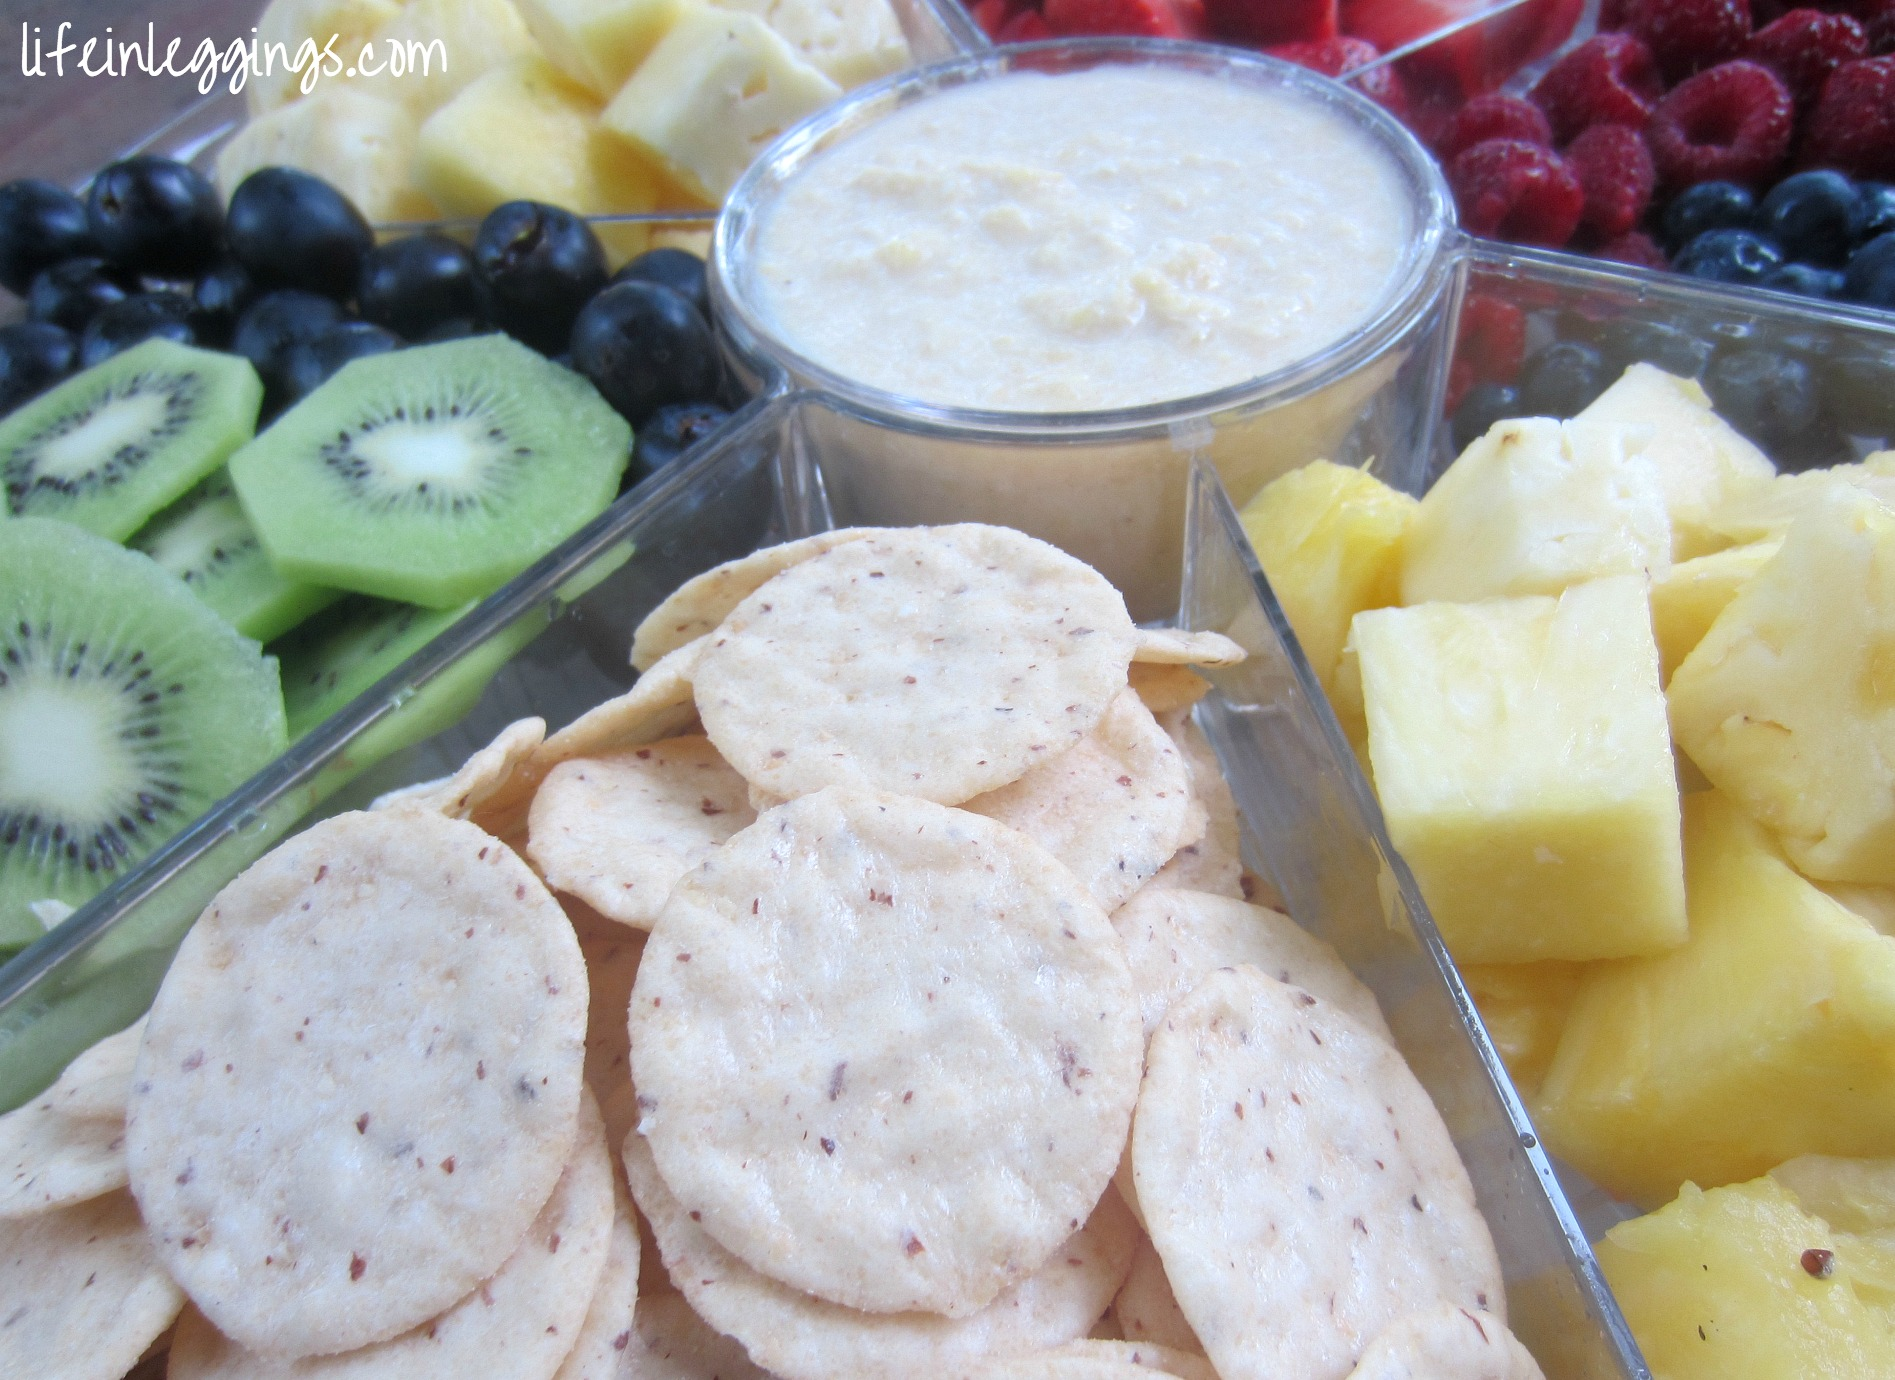 blue diamond nut thins crackers and fruit tray